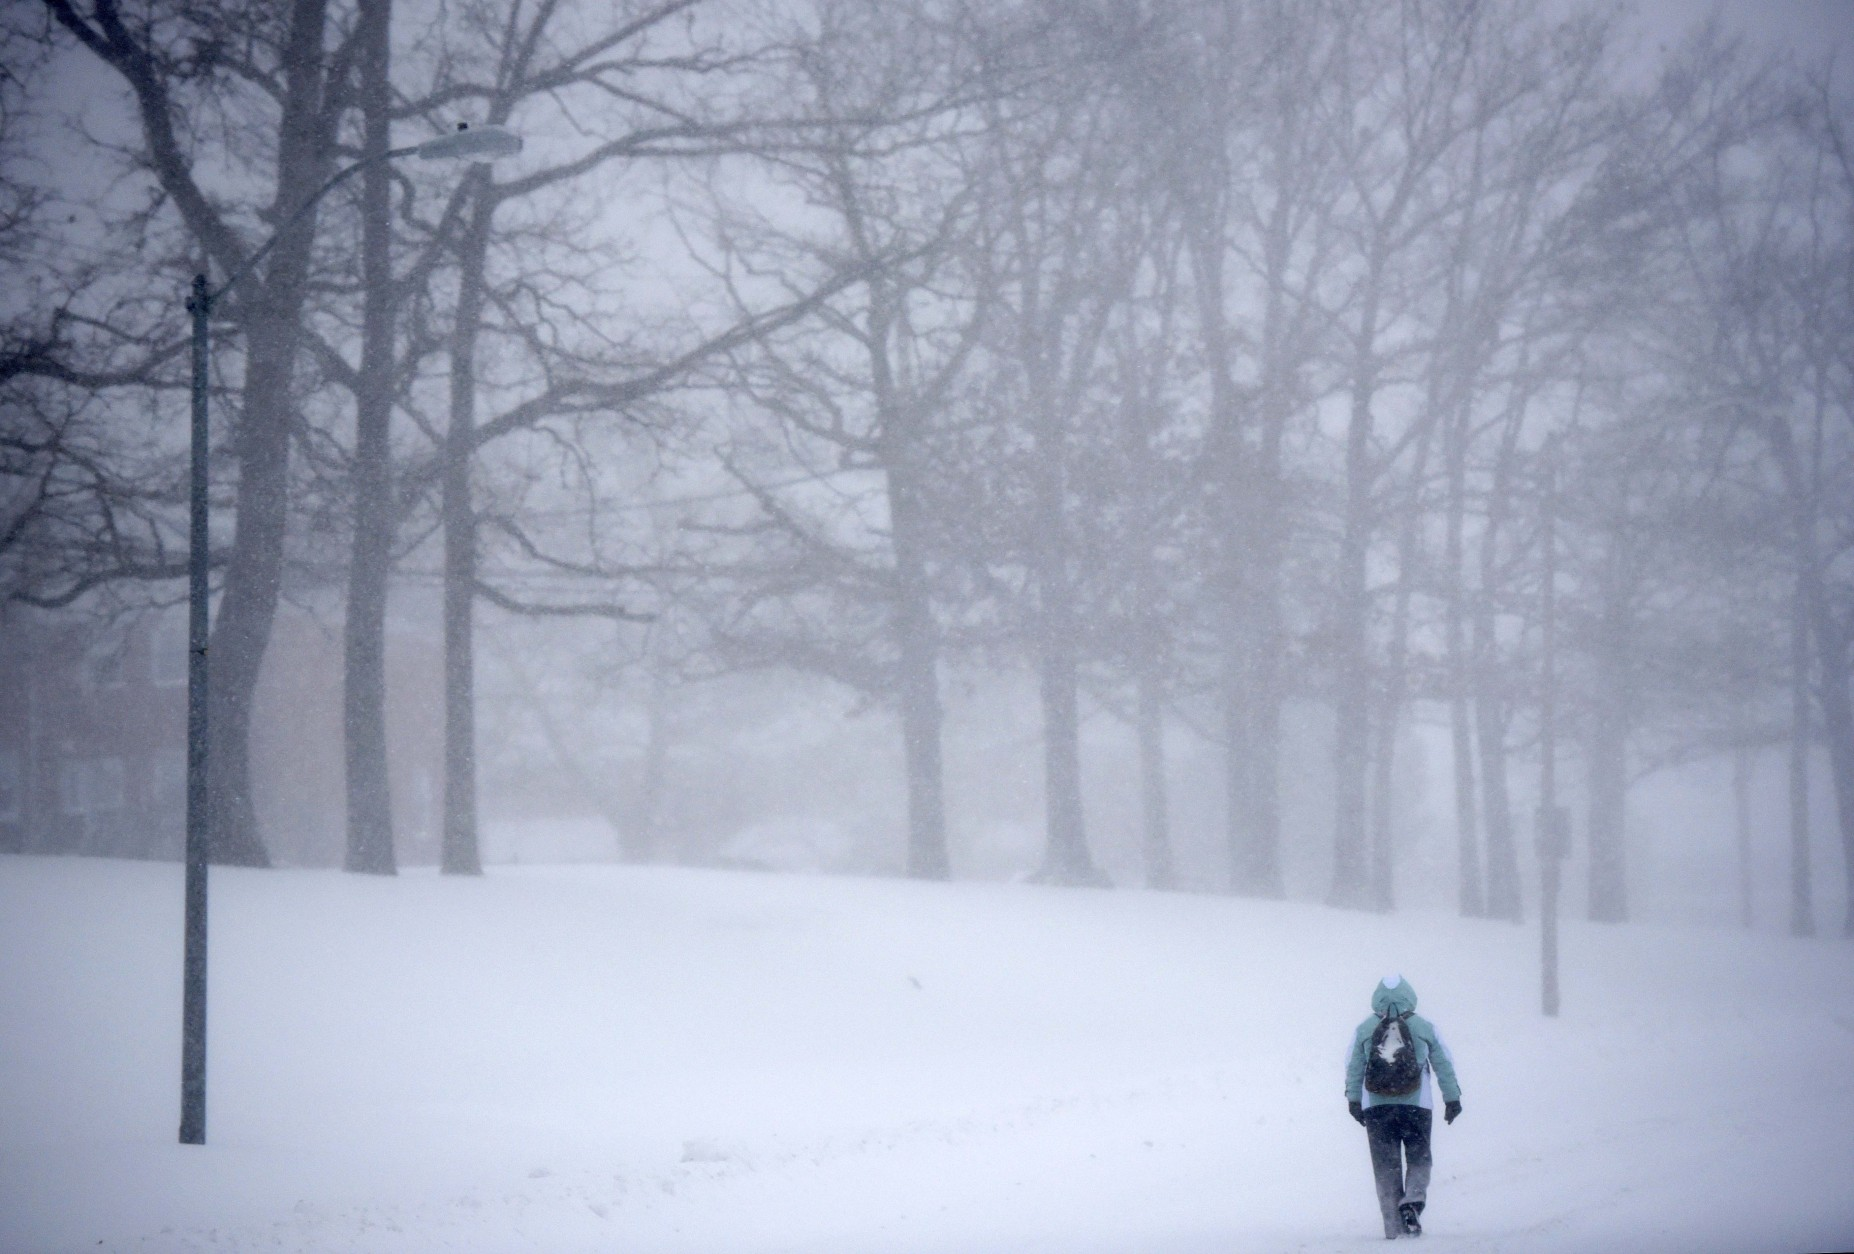 A pedestrian walks through snow in Parkville, Md., Saturday, Jan. 23, 2016. One in seven Americans will get at least half a foot of snow outside their homes when this weekend's big storm has finished delivering blizzards, gale-force winds, whiteout conditions and flooding to much of the eastern United States. (AP Photo/Steve Ruark)